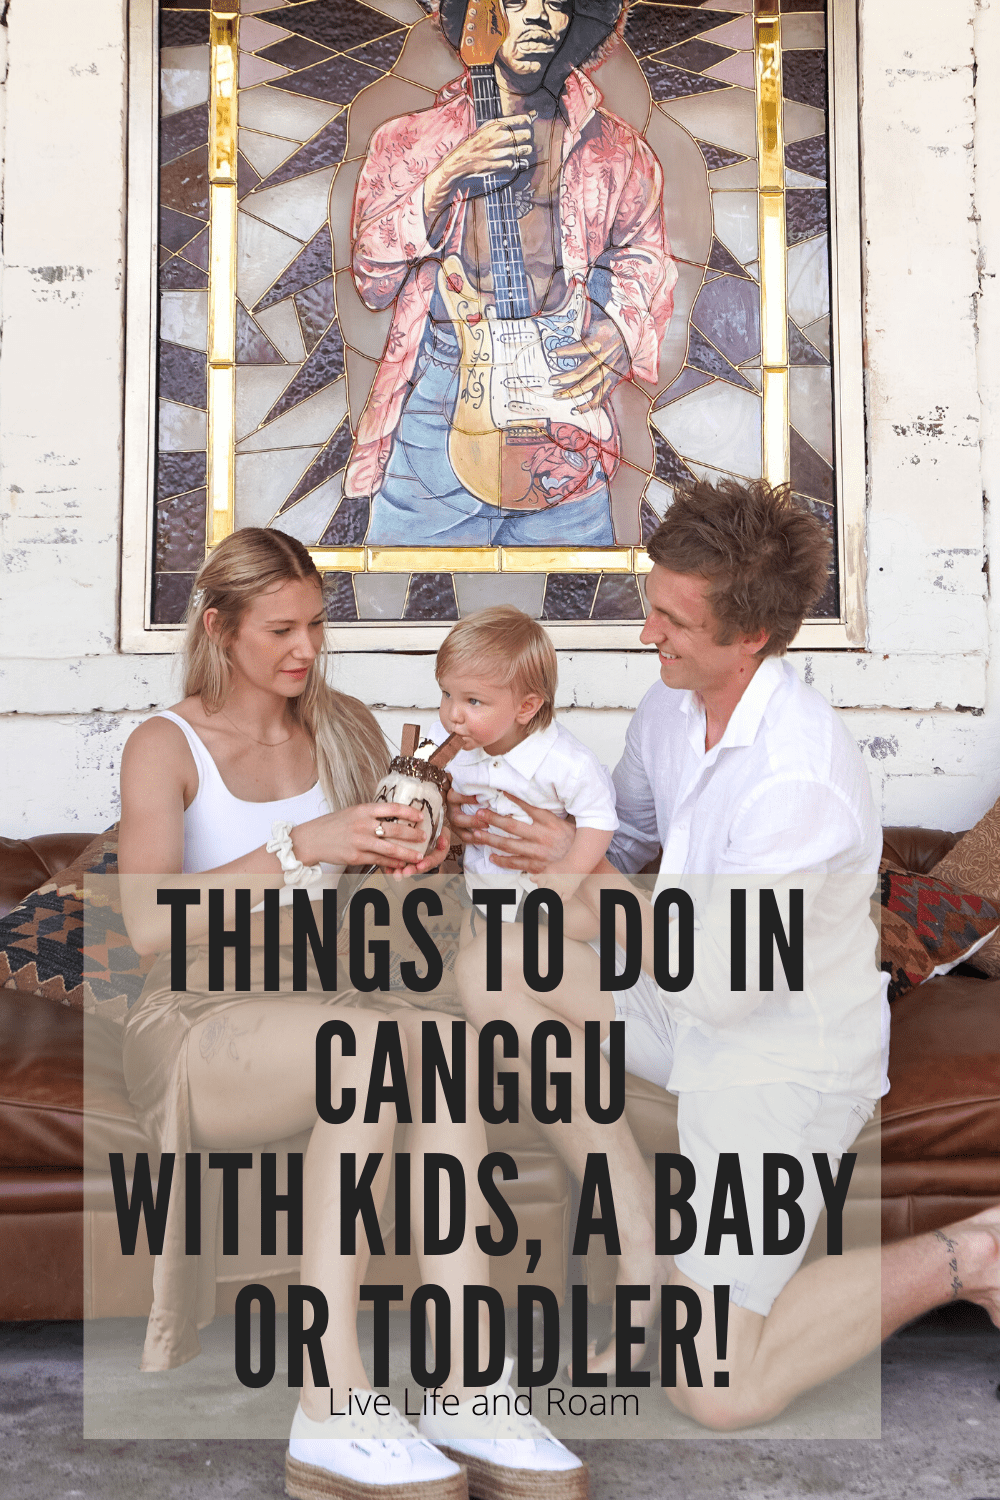 Things to do in canggu with kids a baby or toddler